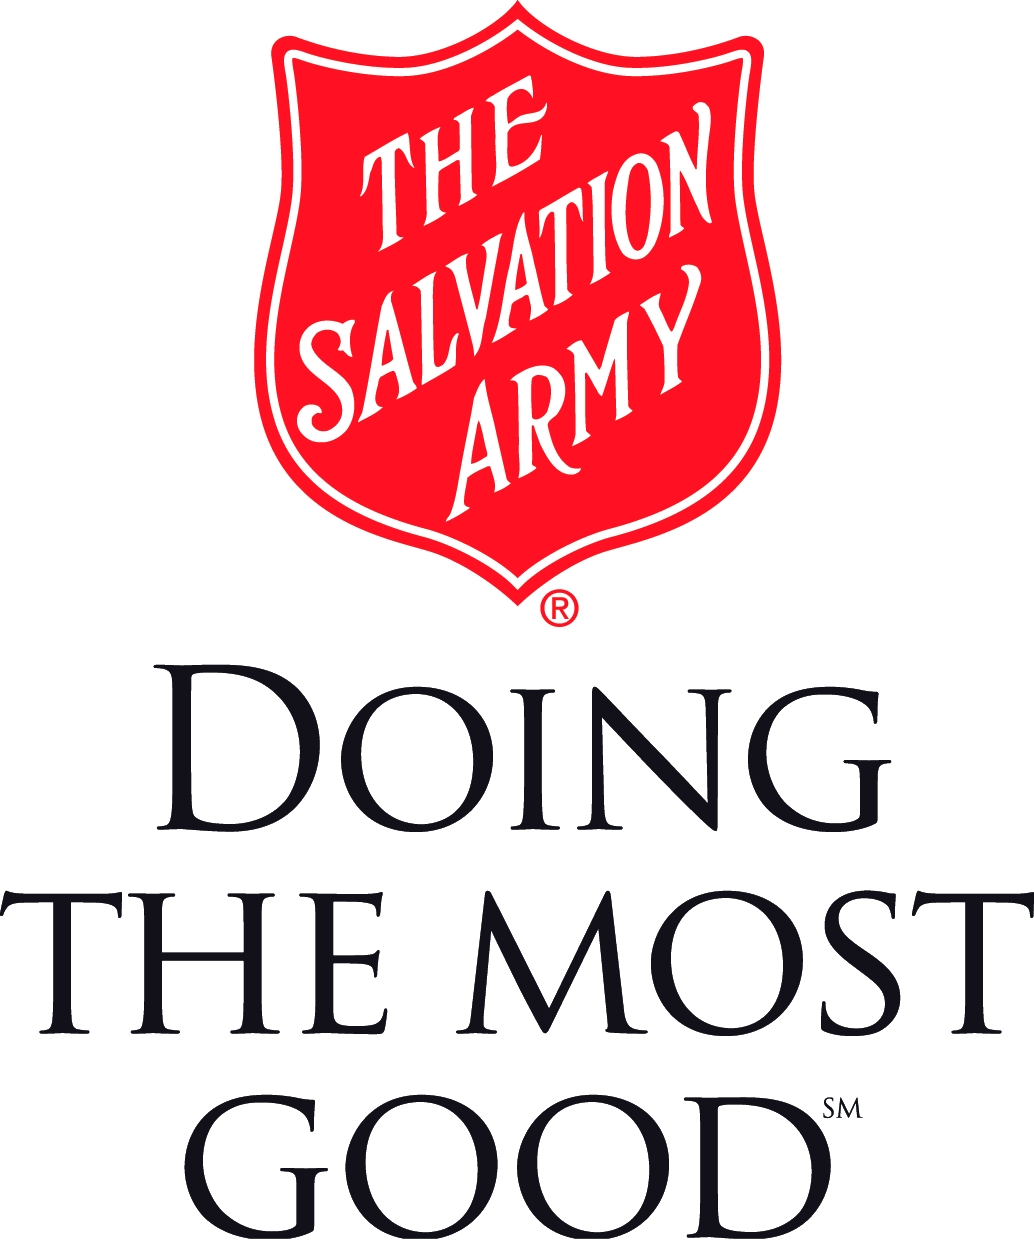 Salvation Army Gifts For Christmas: Forgotten Angels Toy Drive